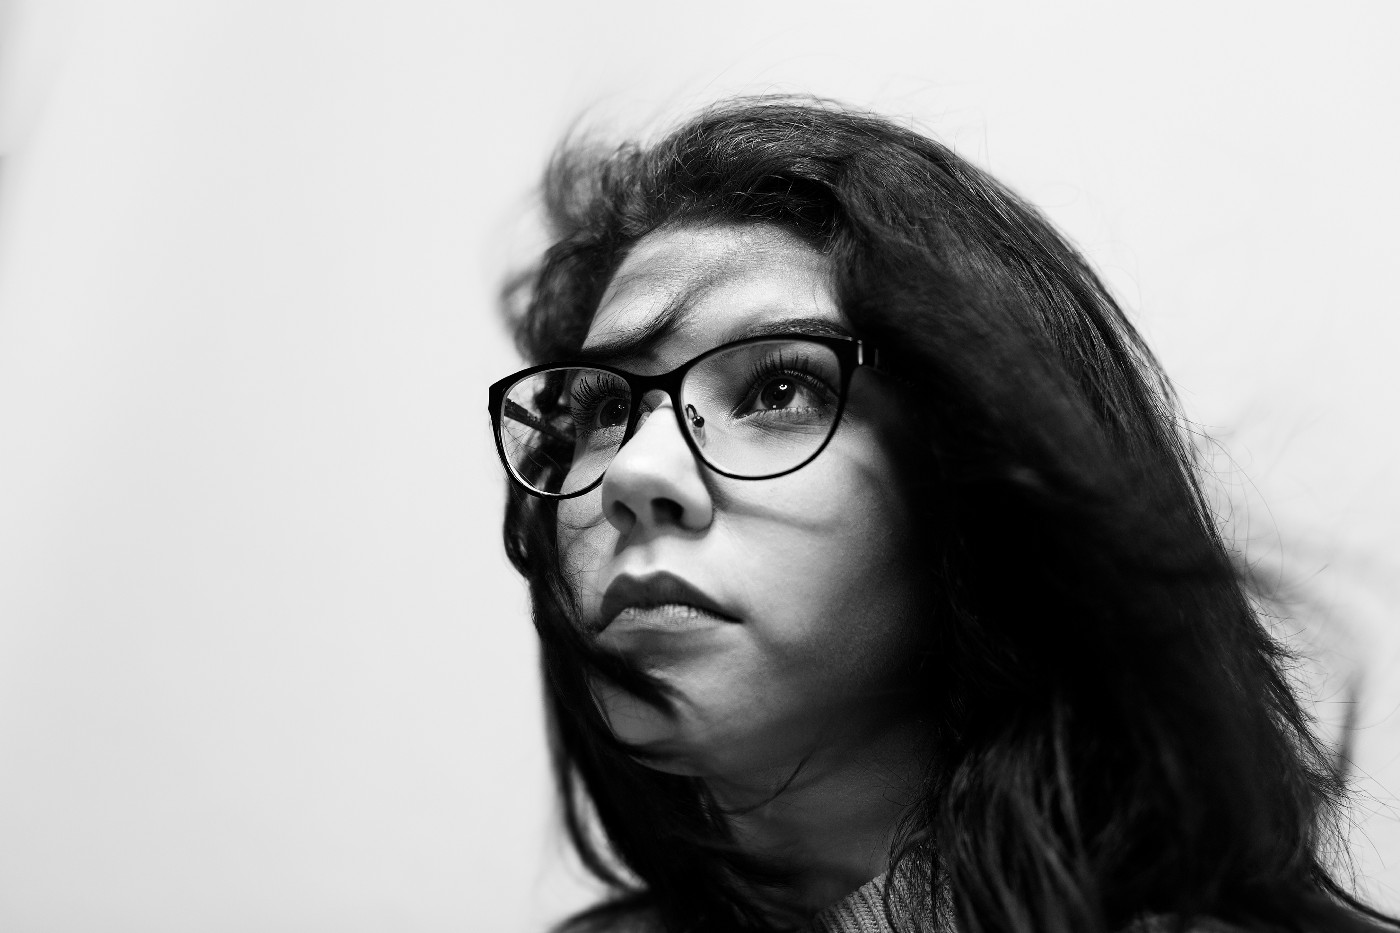 A picture of a girl with glasses looking off into the distance with a confident and determined expression on her face.